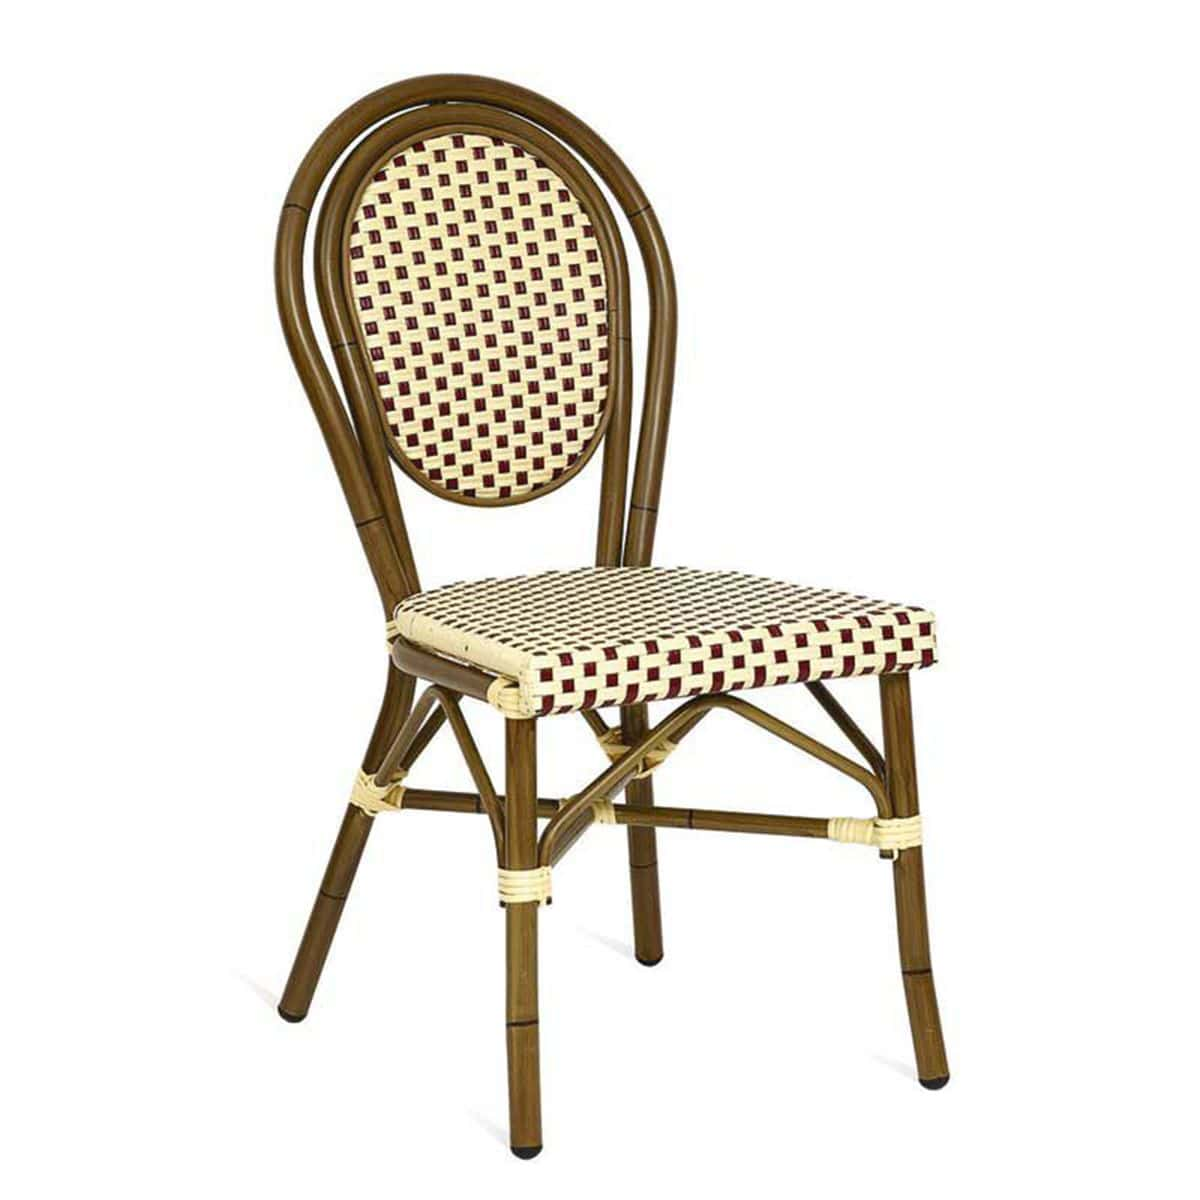 pershore-chair1-min